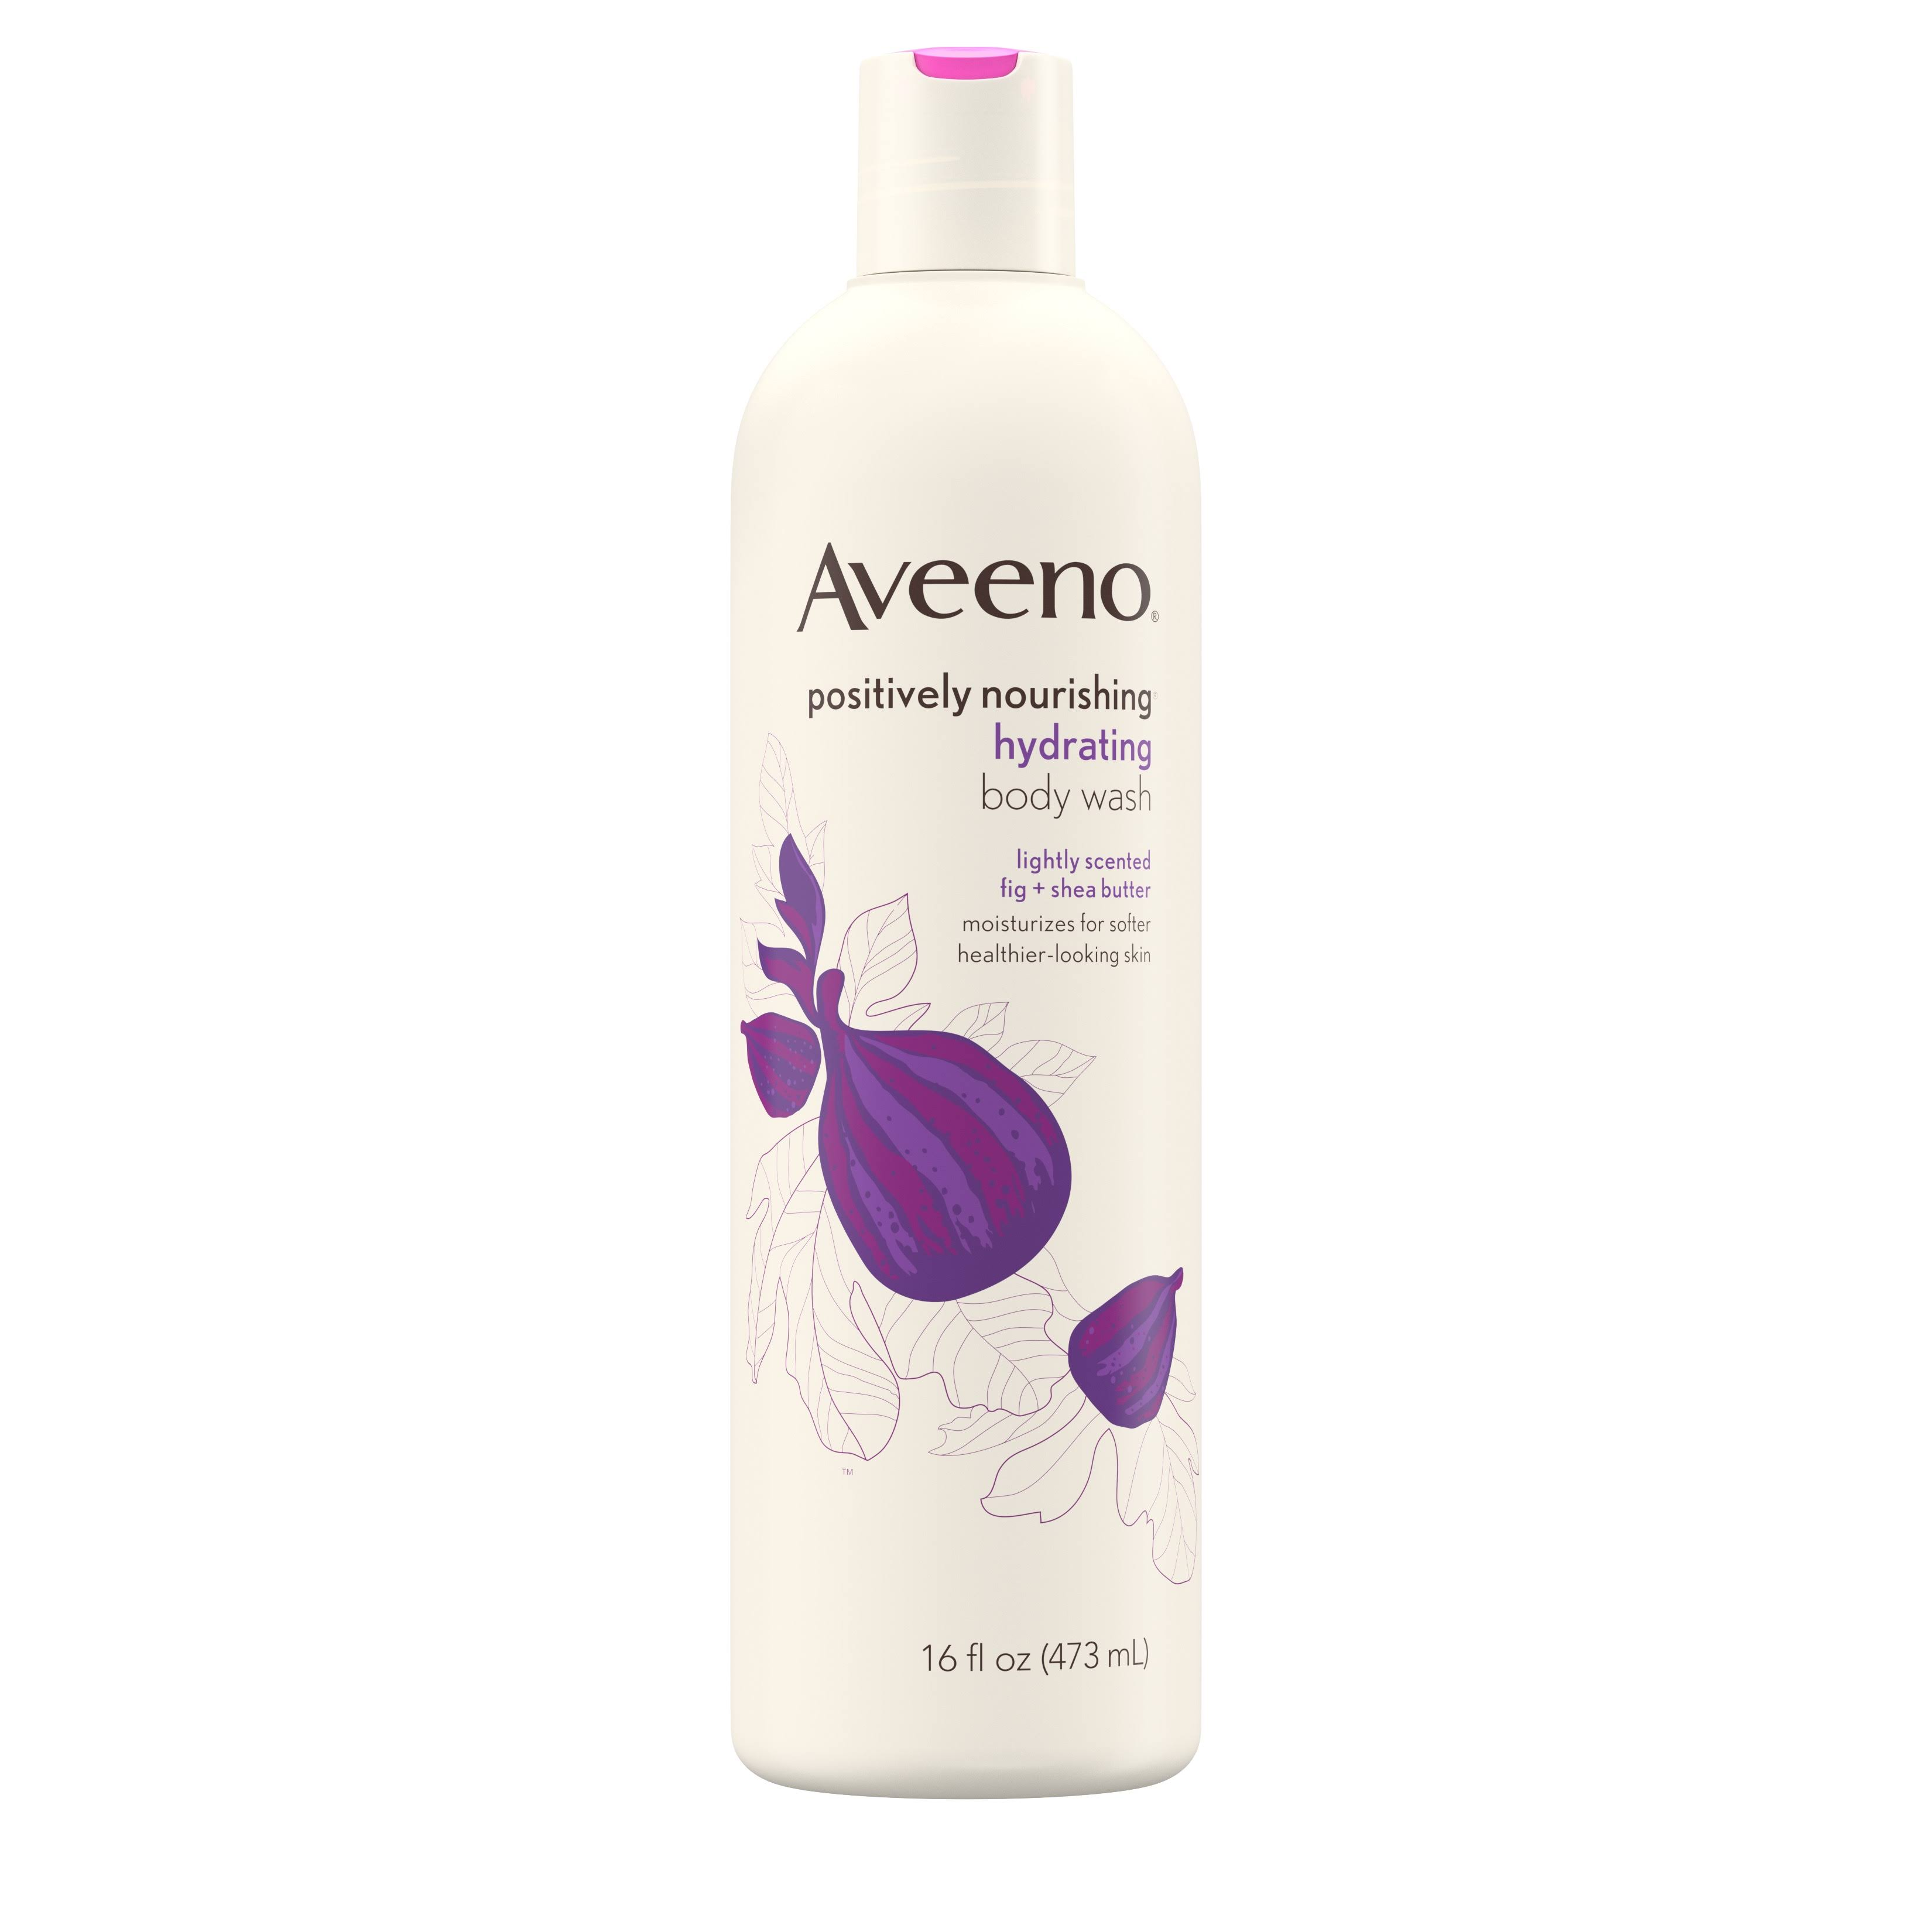 Aveeno Positively Nourishing Hydrating Body Wash - 473ml, Fig Shea Butter